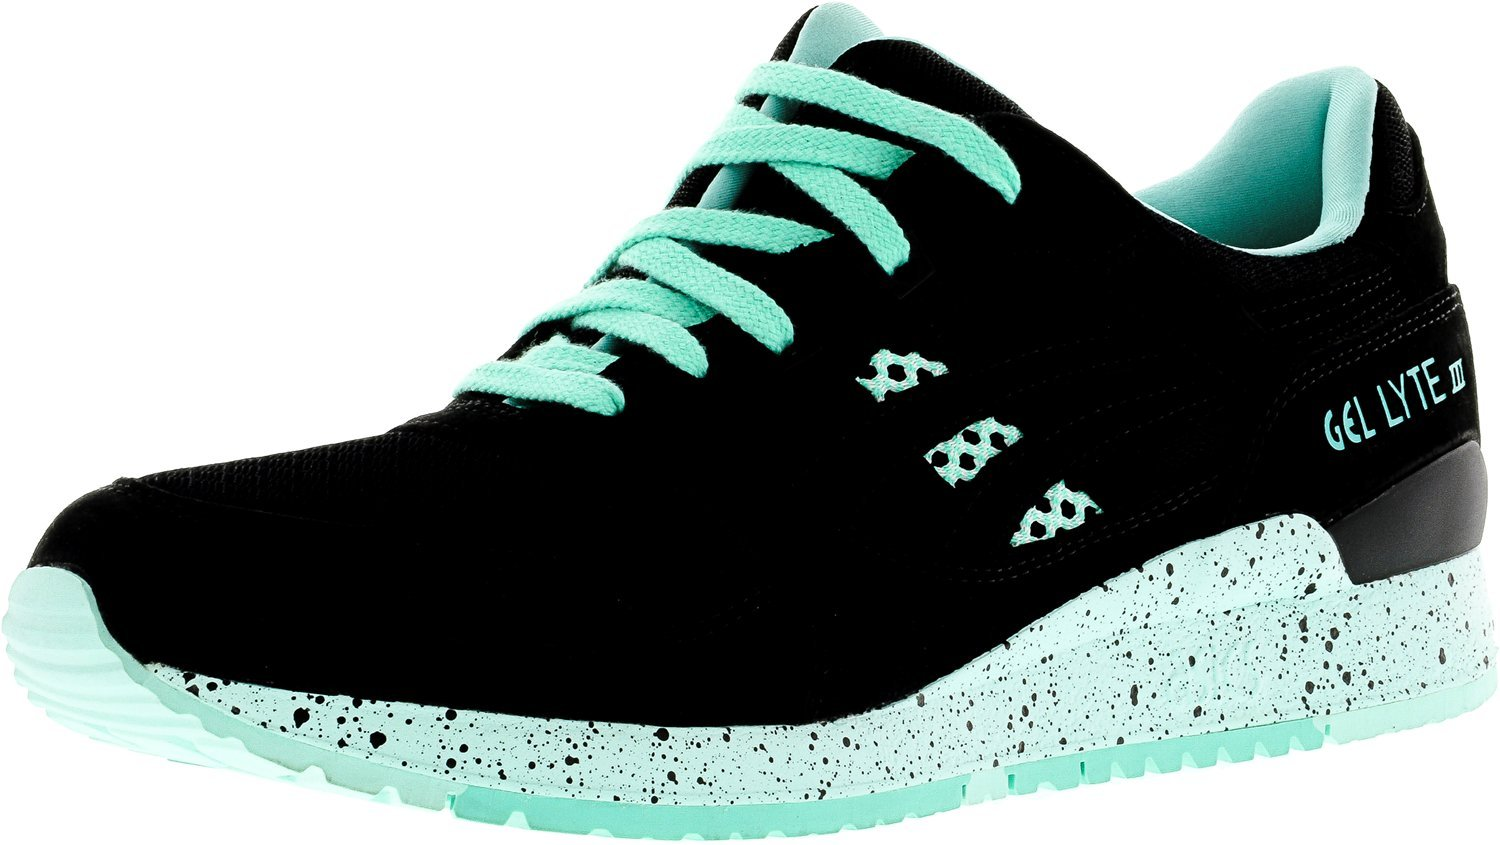 ASICS Men's Gel-Lyte III Fashion Sneaker B019PWE248 9.5 D(M) US|Black / Black